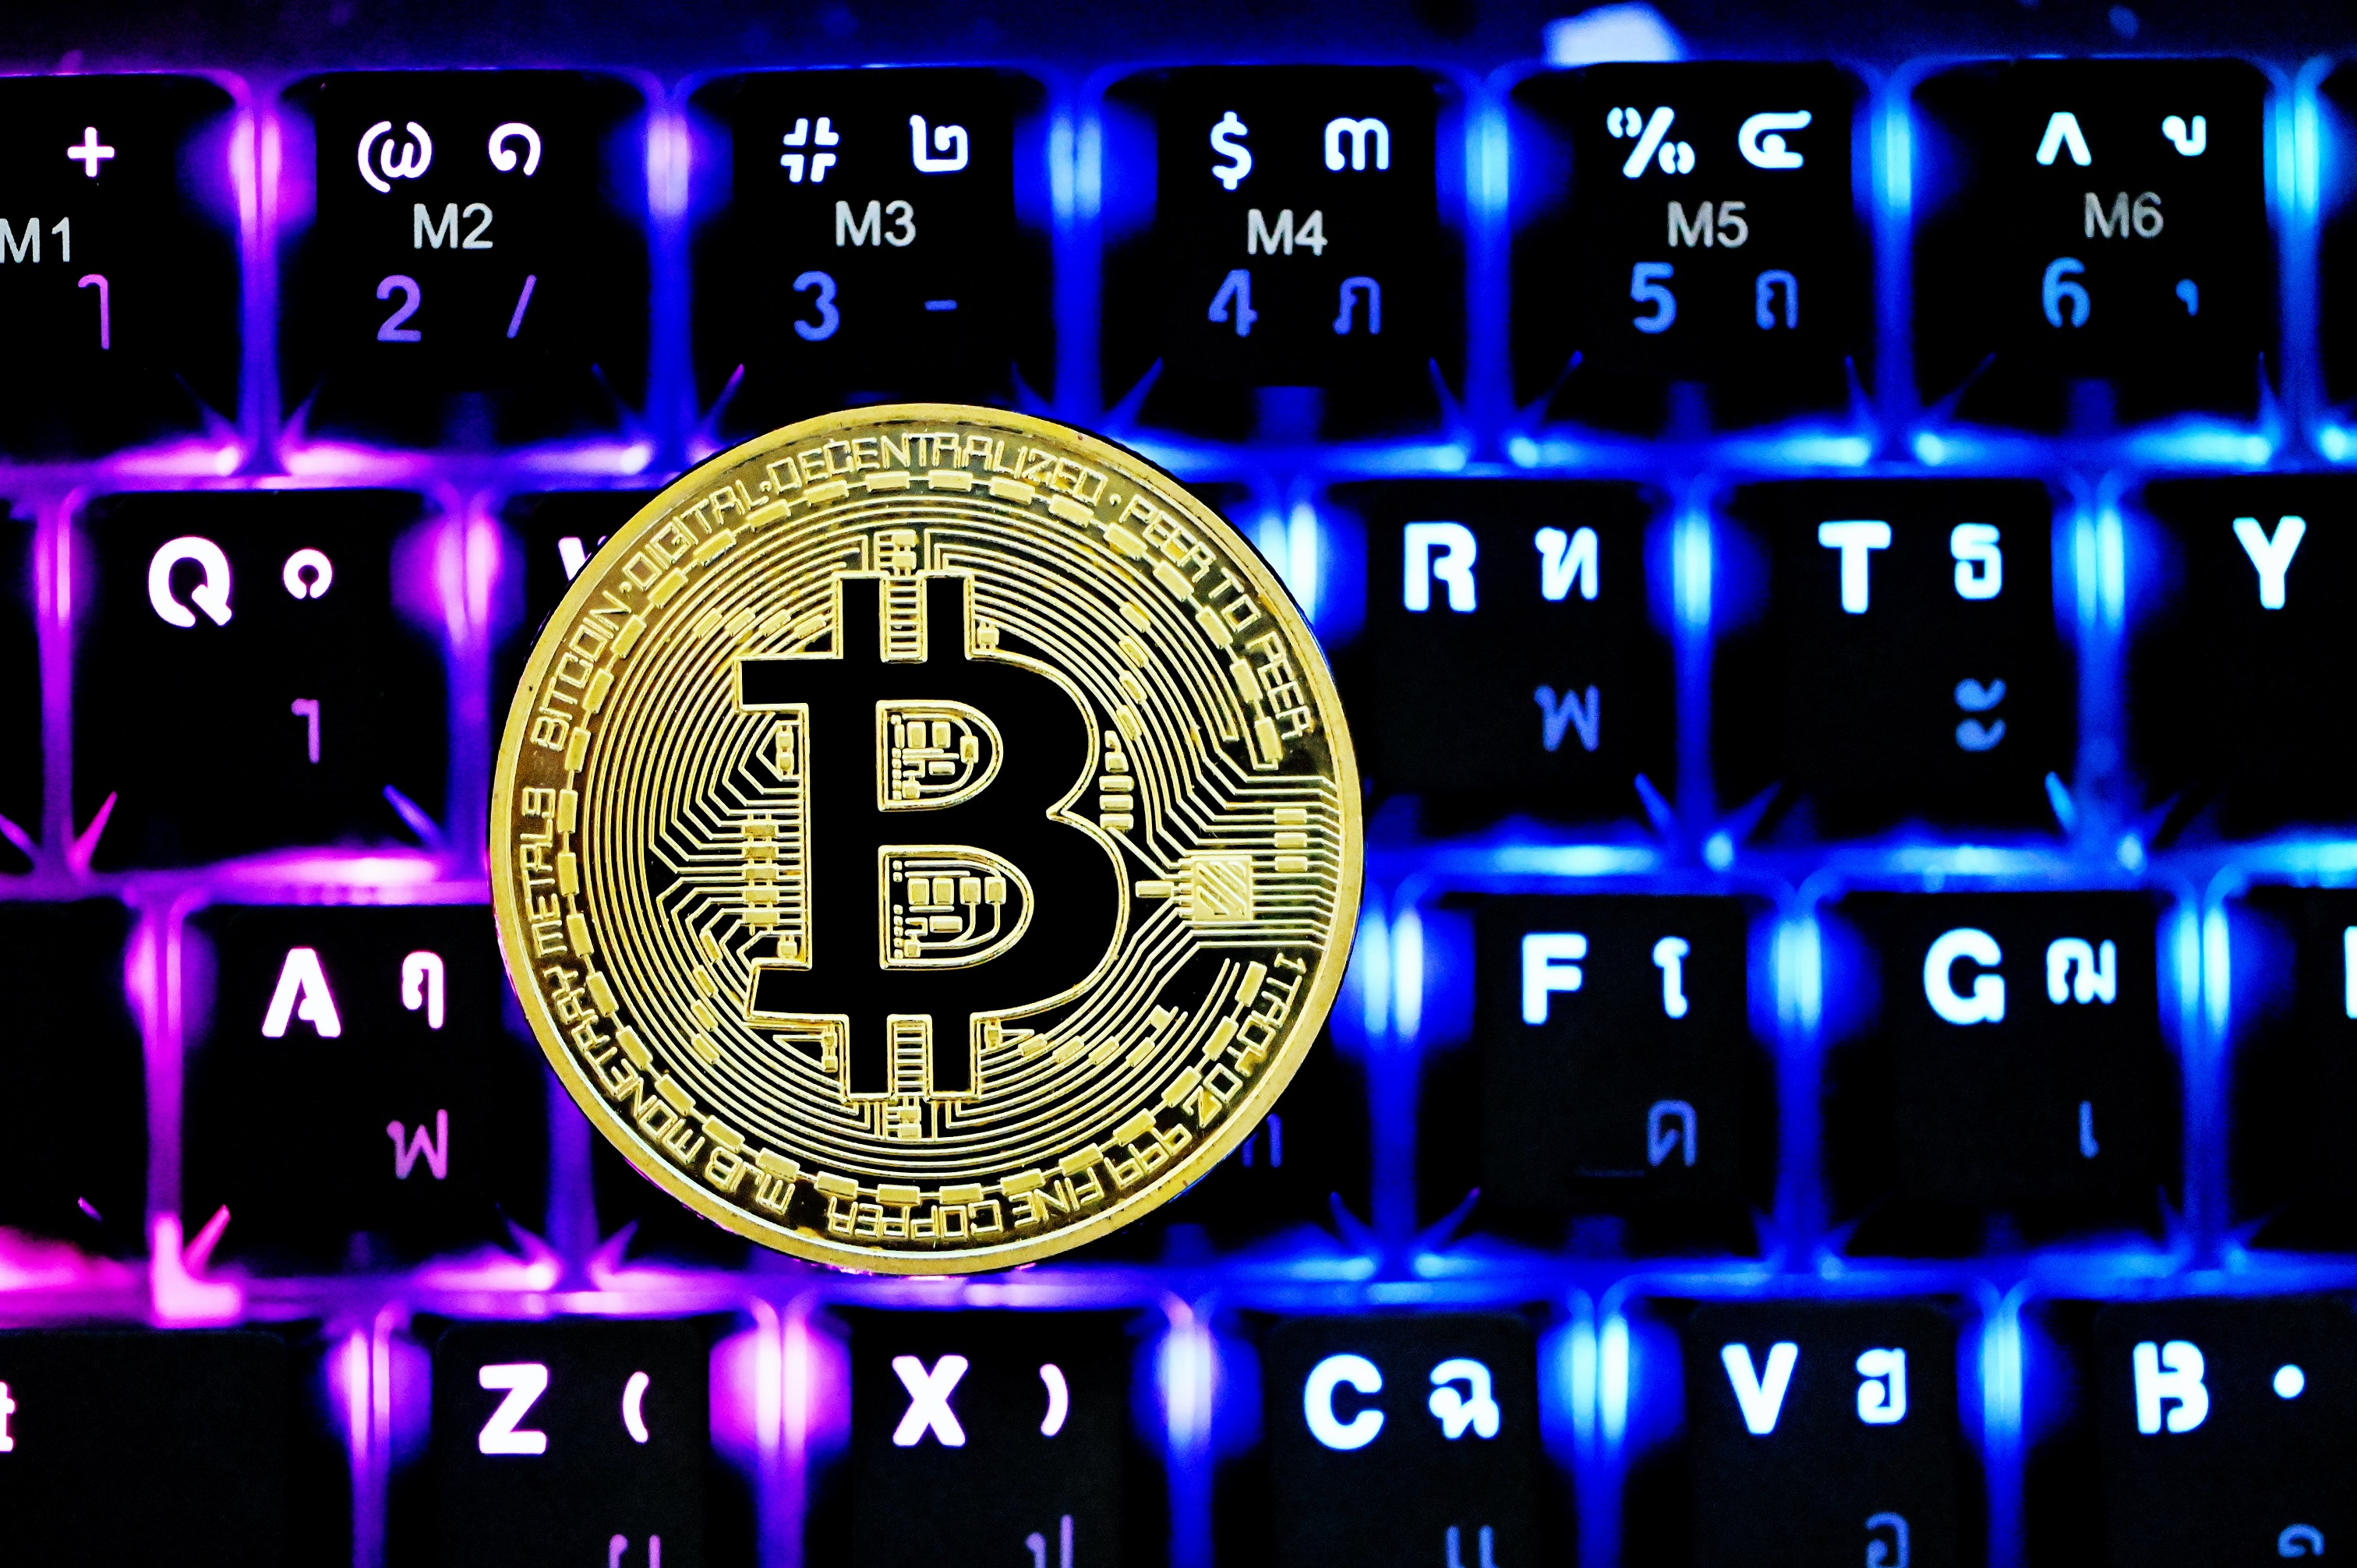 Supply Shock: The Number Of Bitcoin Changing Hands Dips To 2015 Levels